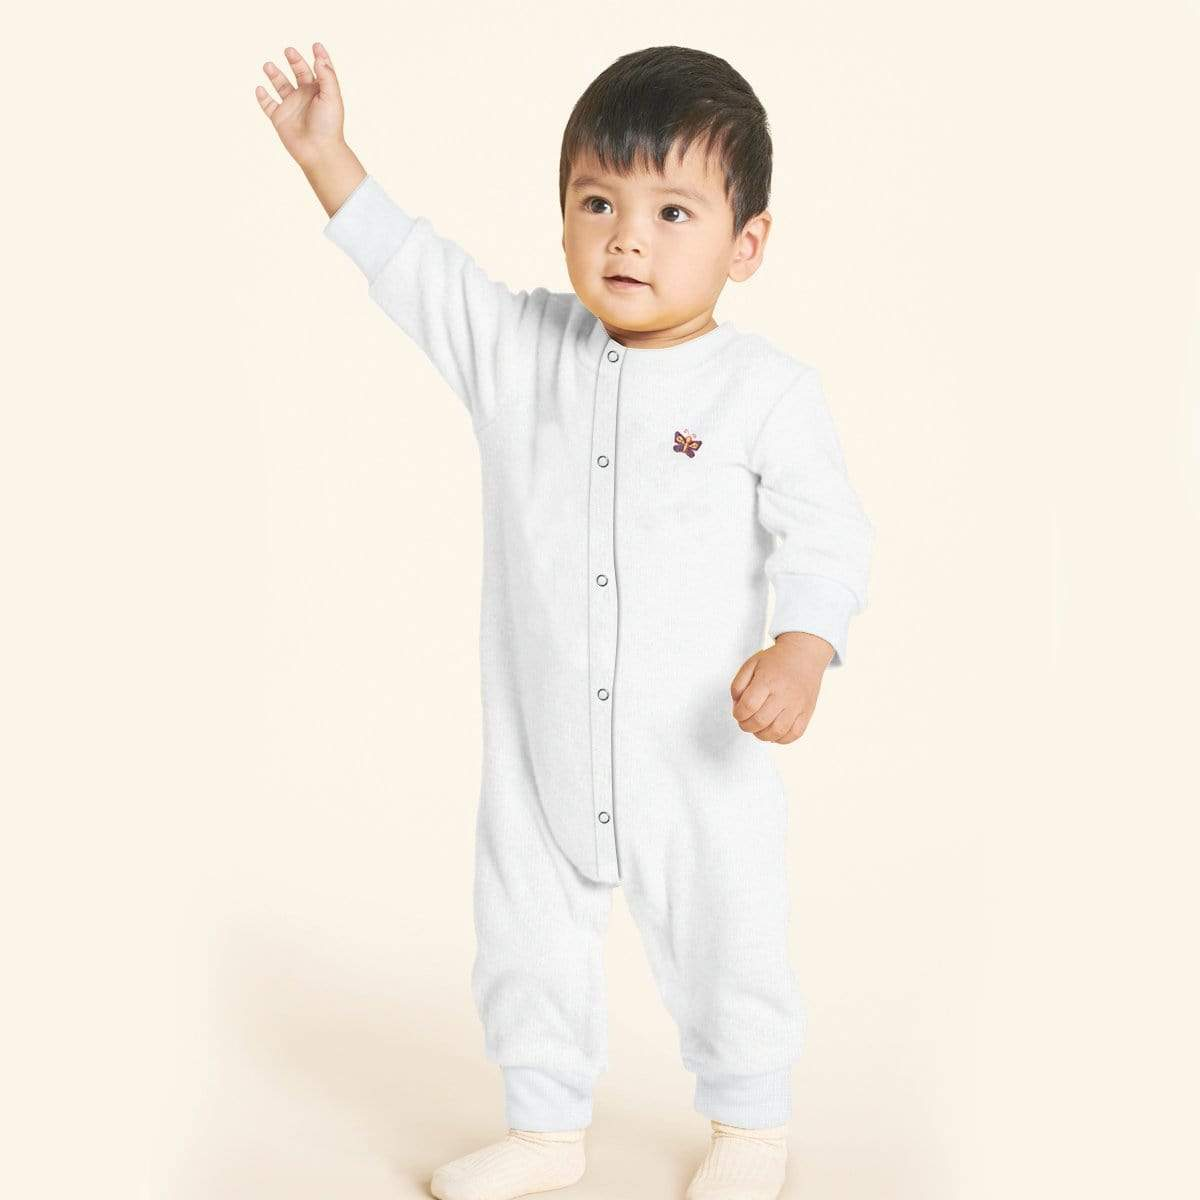 Stone Harbor Kid's Romper White / 0-3 Months Kid's Stone Harbor UNISEX Butterfly Fleece Romper